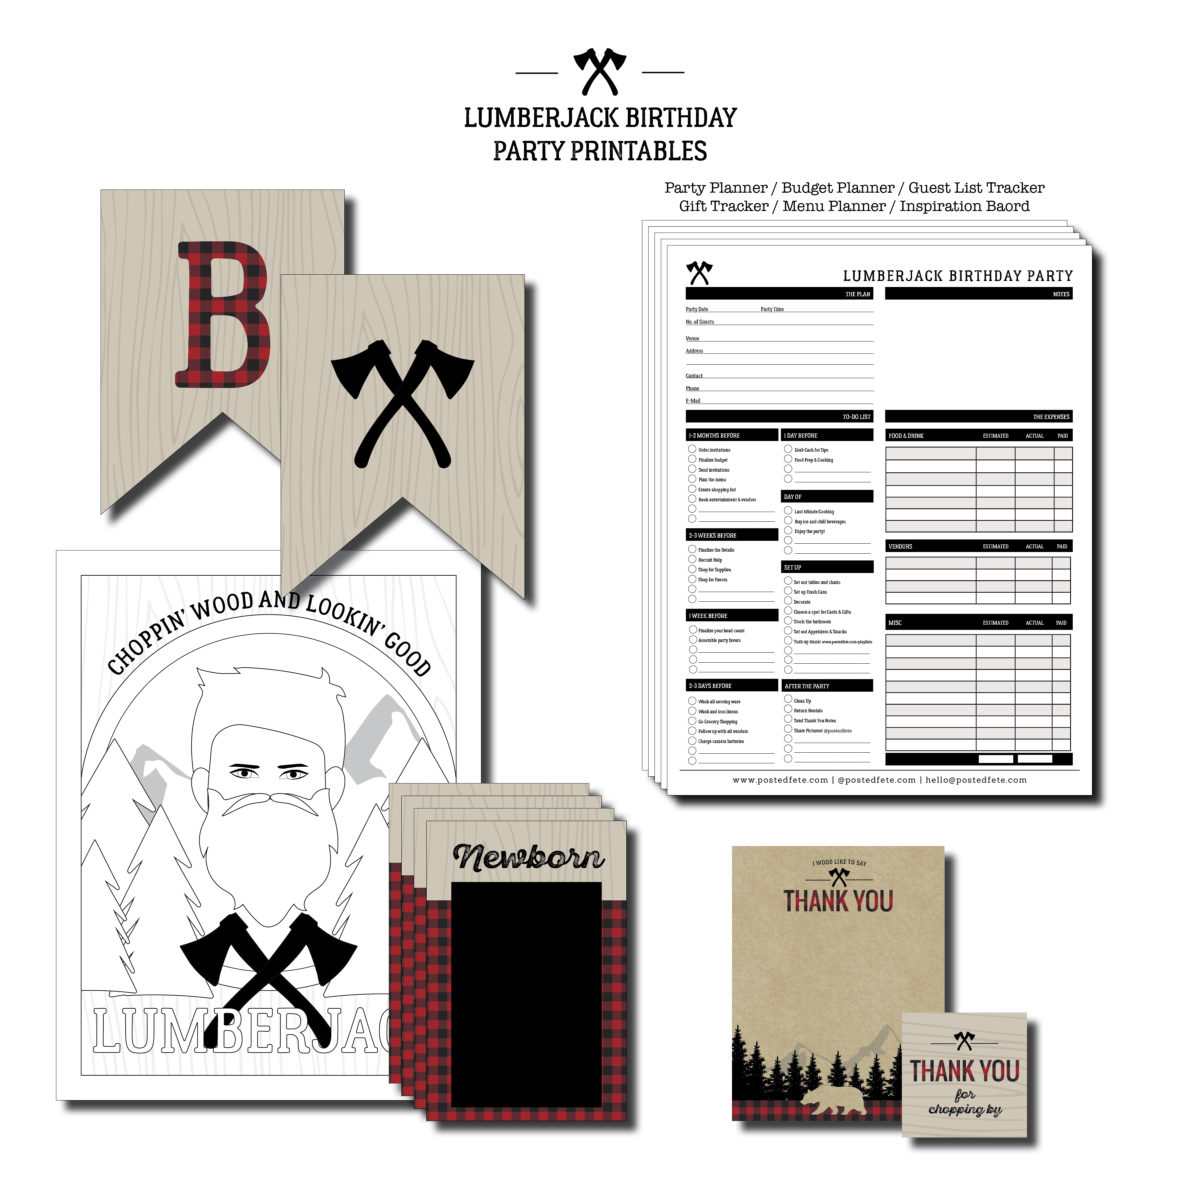 Lumberjack birthday party printables | by Posted Fete